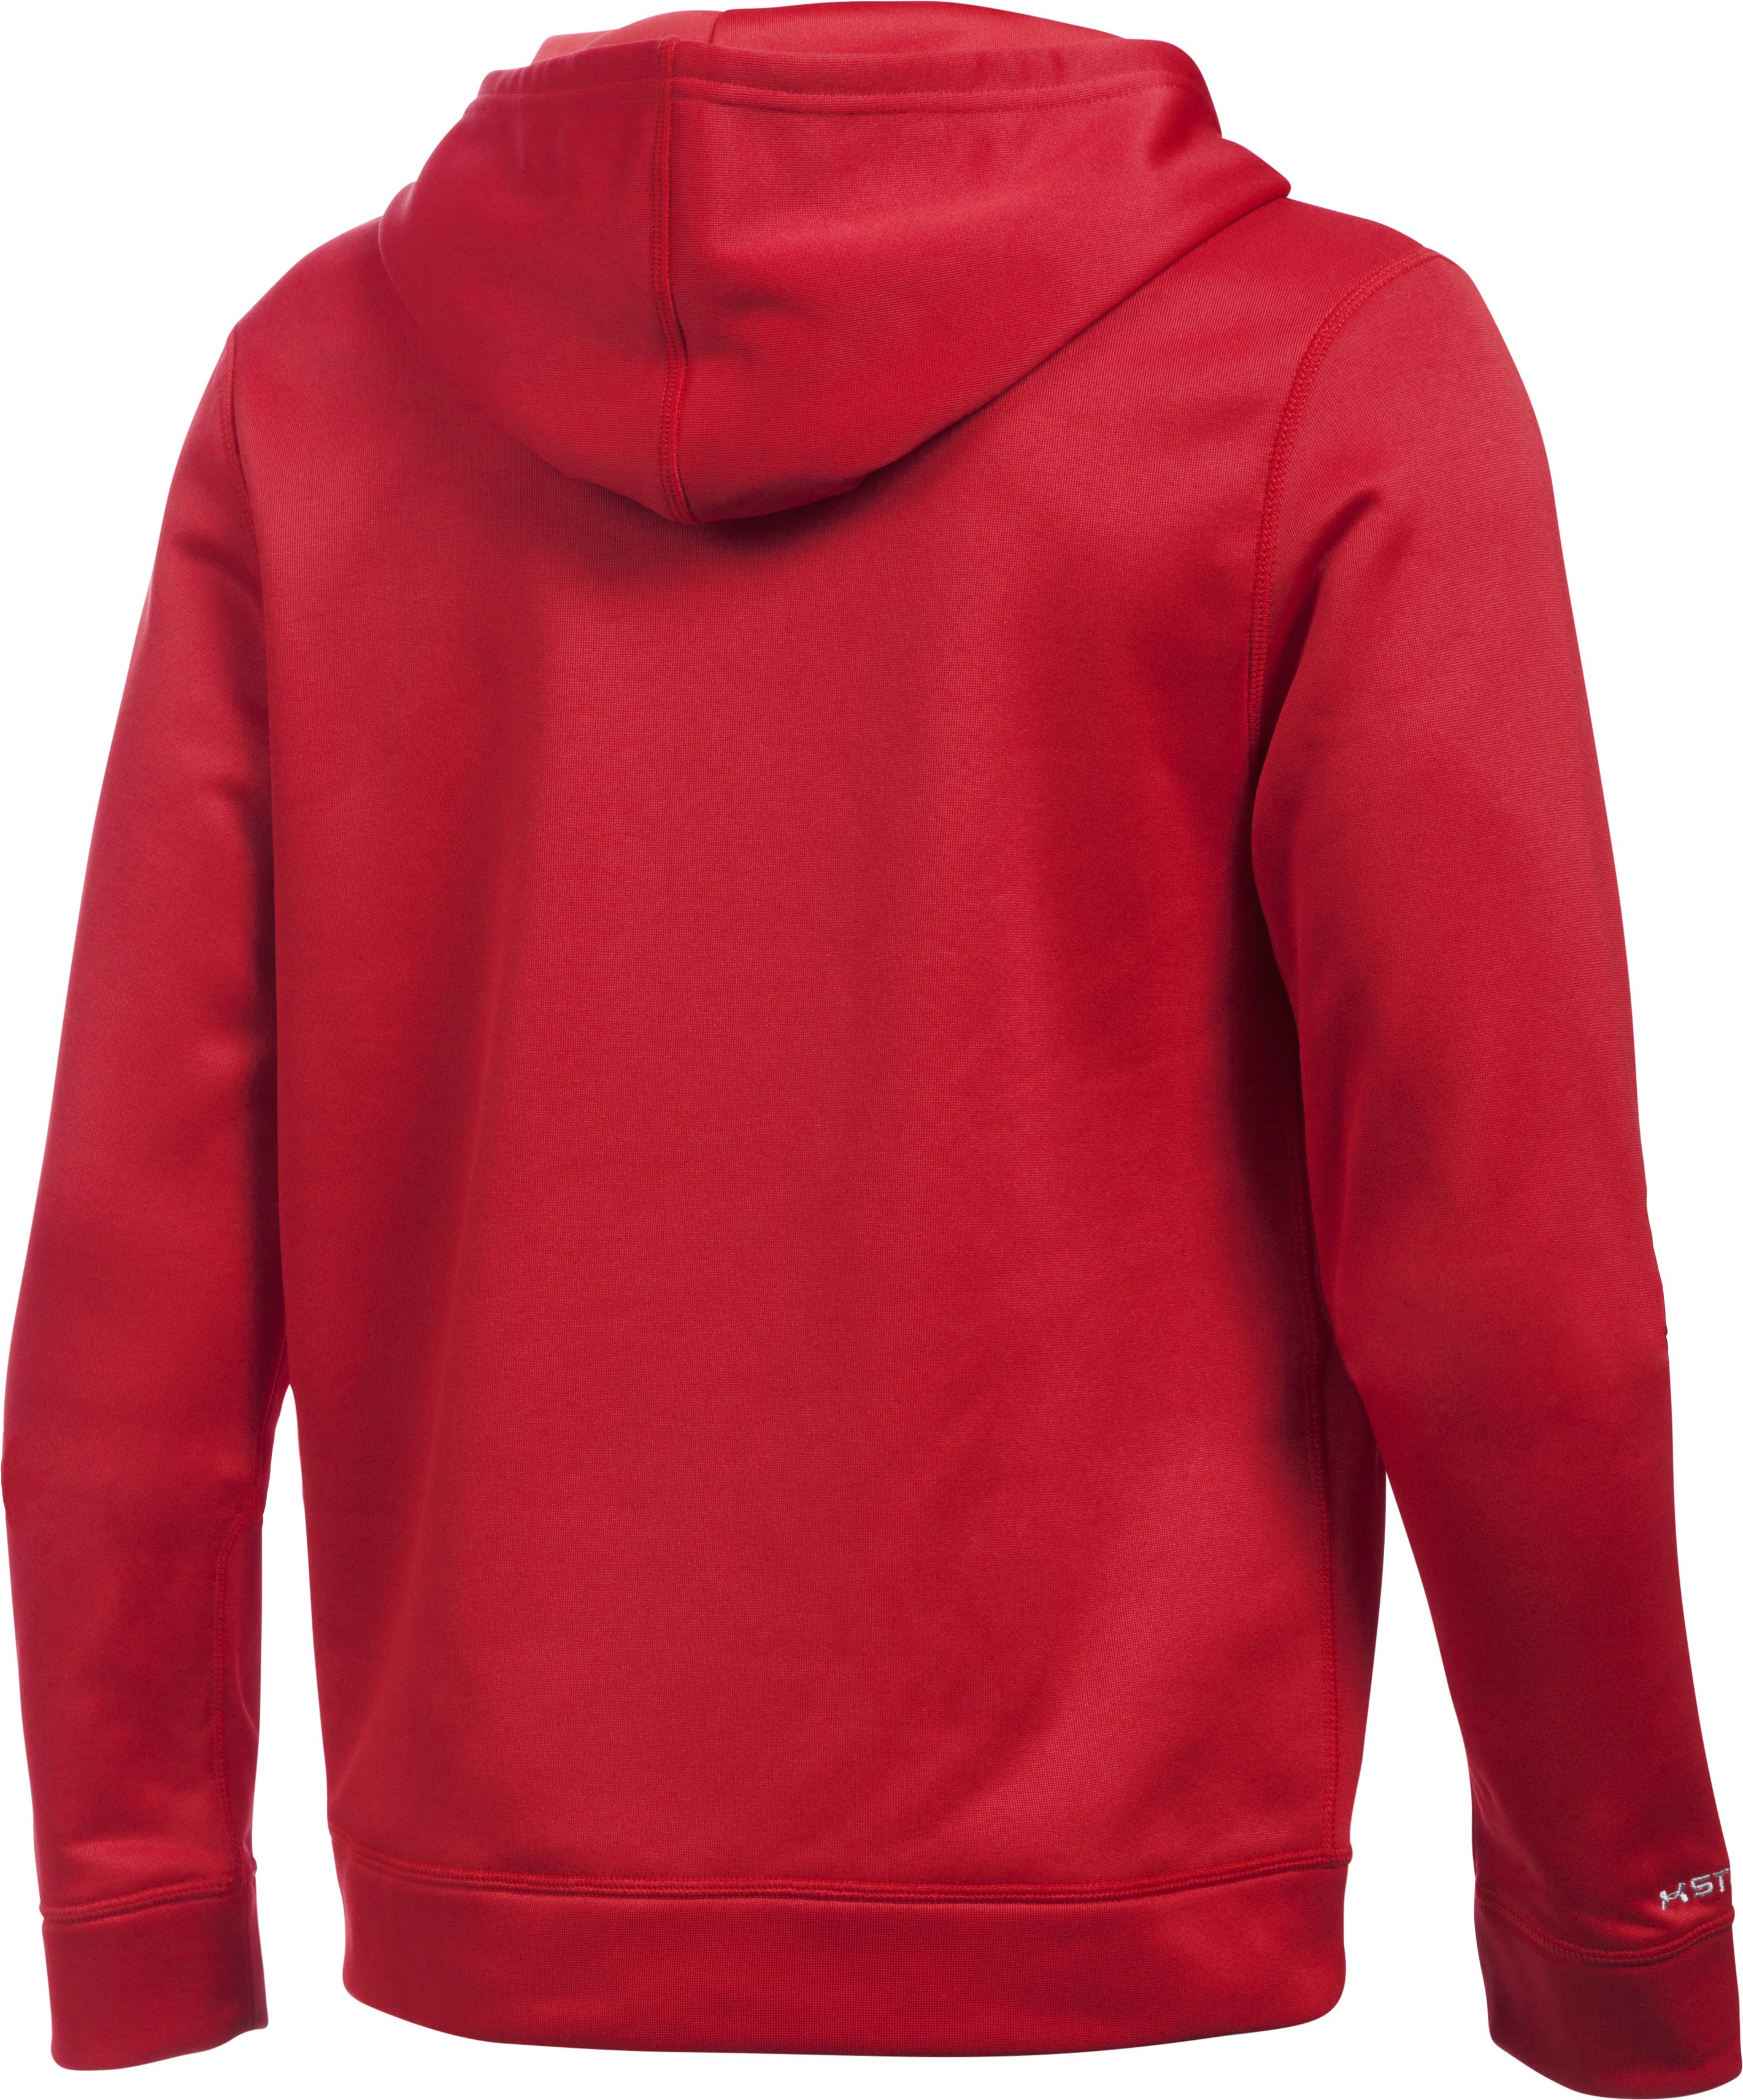 Boys' Los Angeles Angels UA Storm Armour® Fleece Hoodie, Red